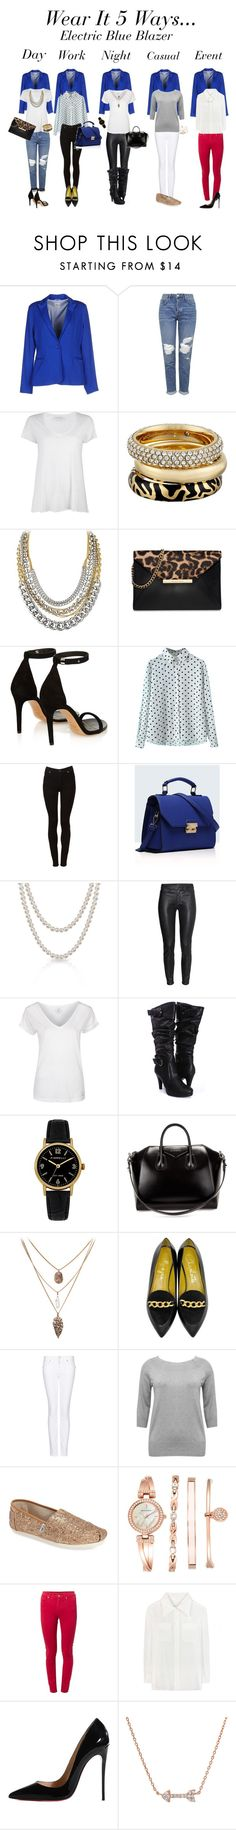 """""""Electric Blue Blazer...Wear It 5 Ways"""" by misschandelier ❤ liked on Polyvore featuring Maison Espin, Topshop, American Vintage, Michael Kors, Dyrberg/Kern, MICHAEL Michael Kors, Isabel Marant, Cheap Monday, Relaxfeel and Bling Jewelry"""